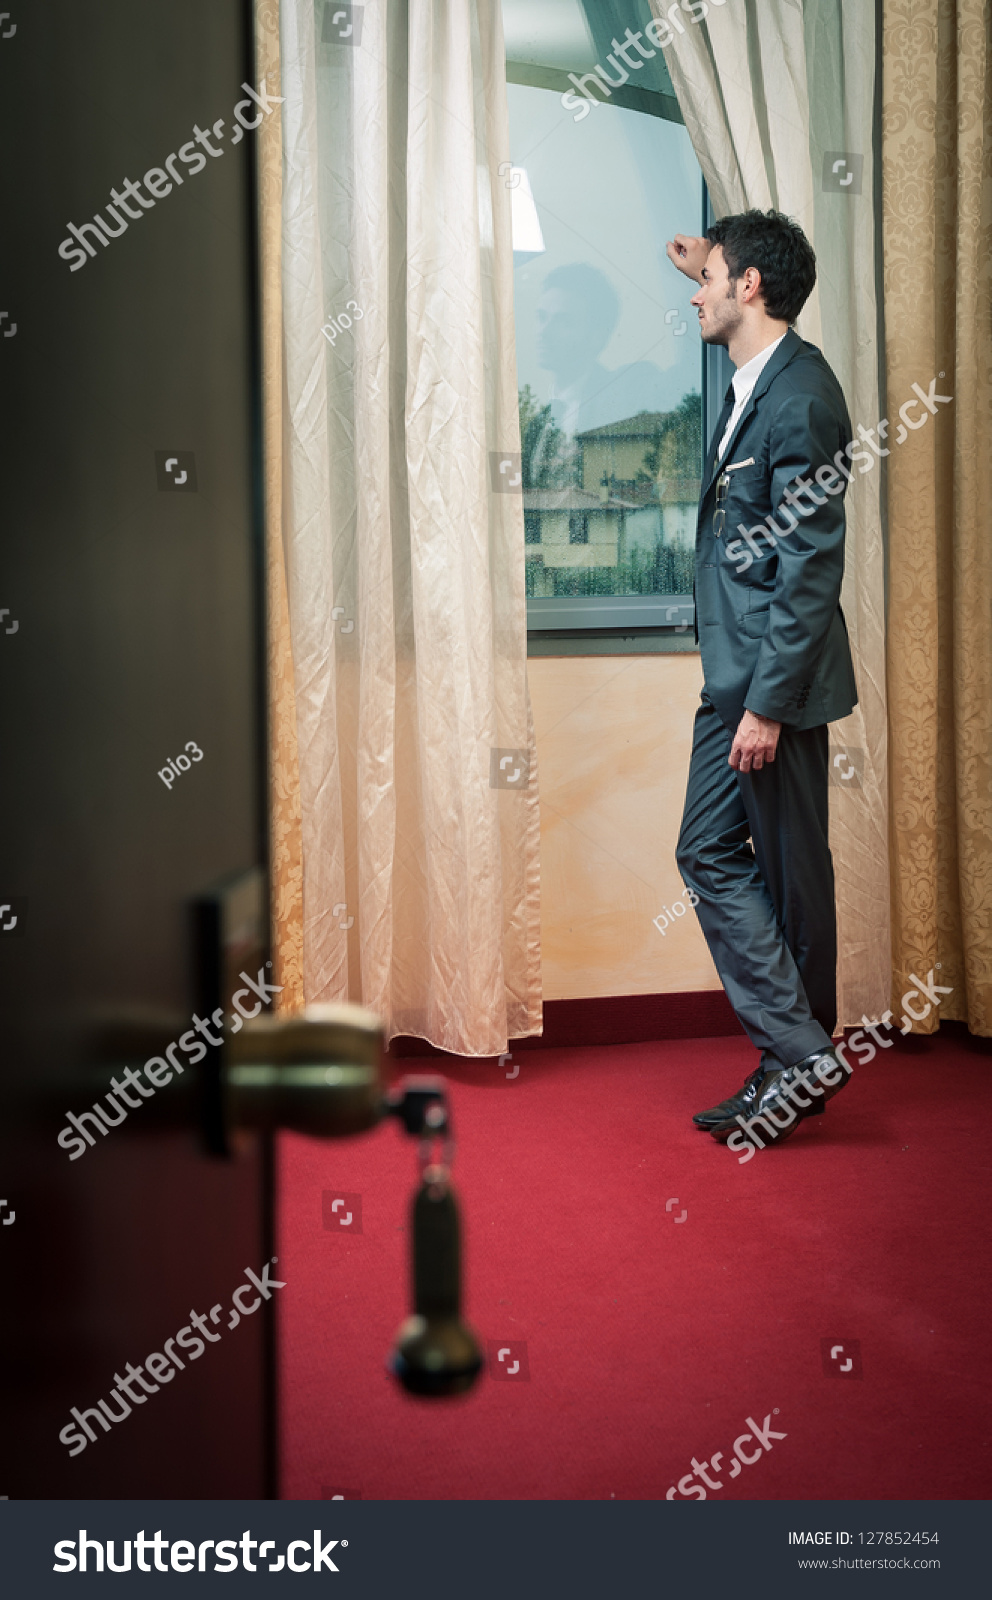 Inside Hotel Room: Lonely Man At The Window Inside Hotel Room. Stock Photo